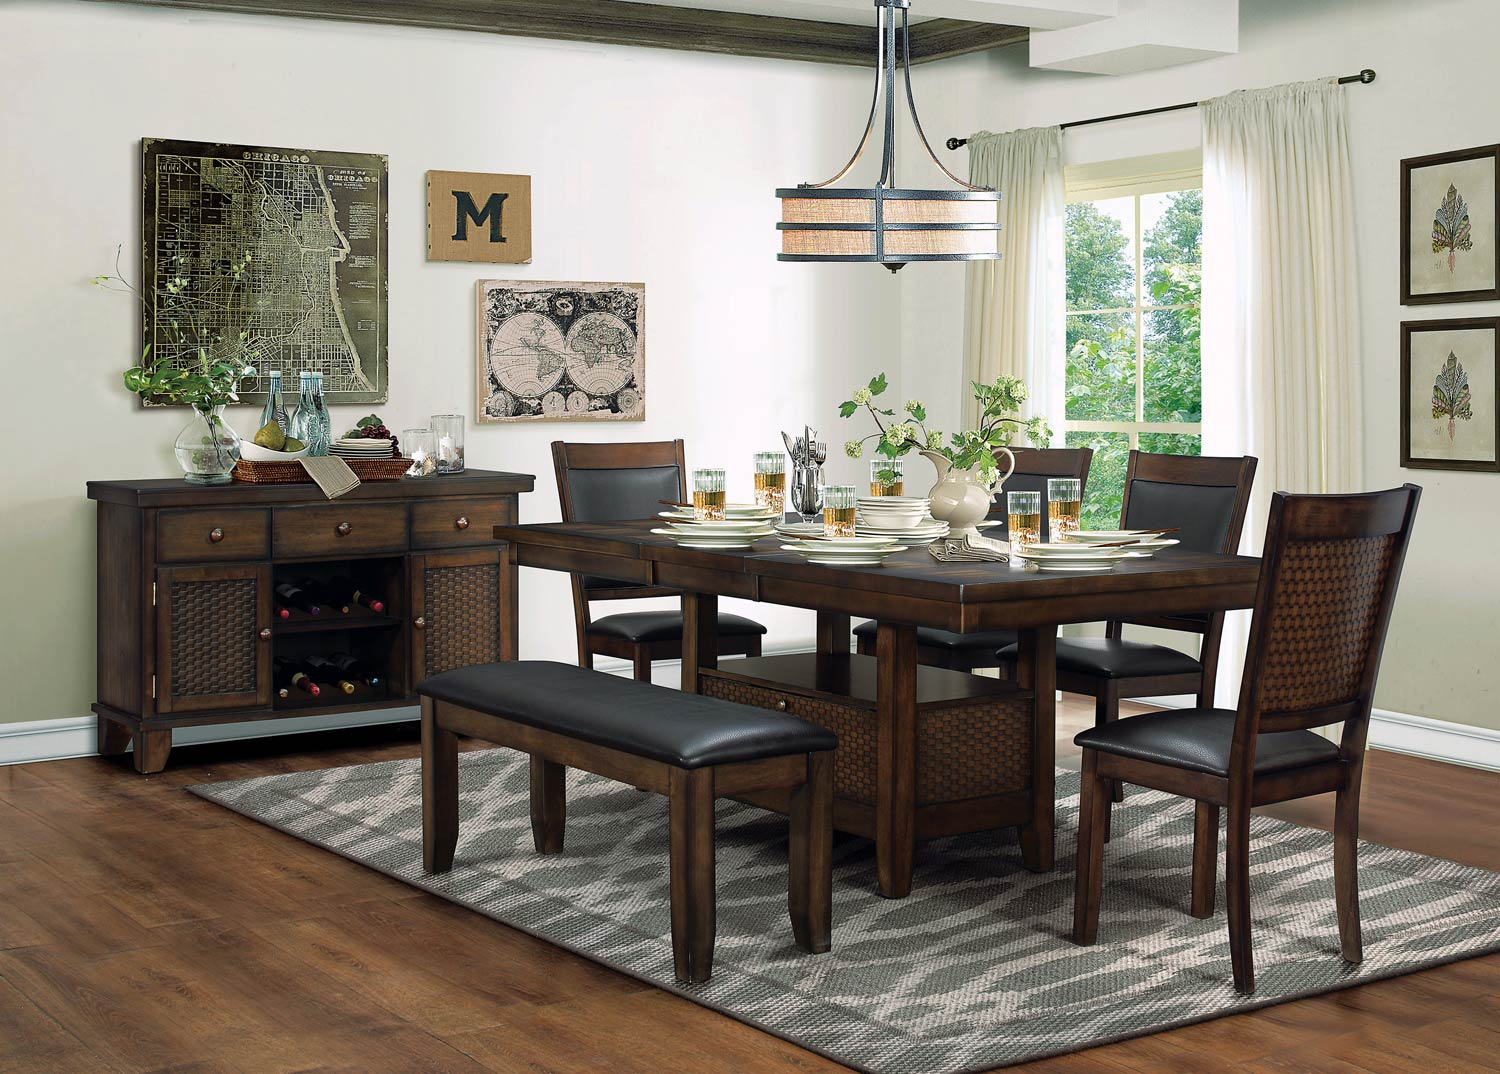 Homelegance Wickham Dining Set with Storage - Burnished Dark Walnut